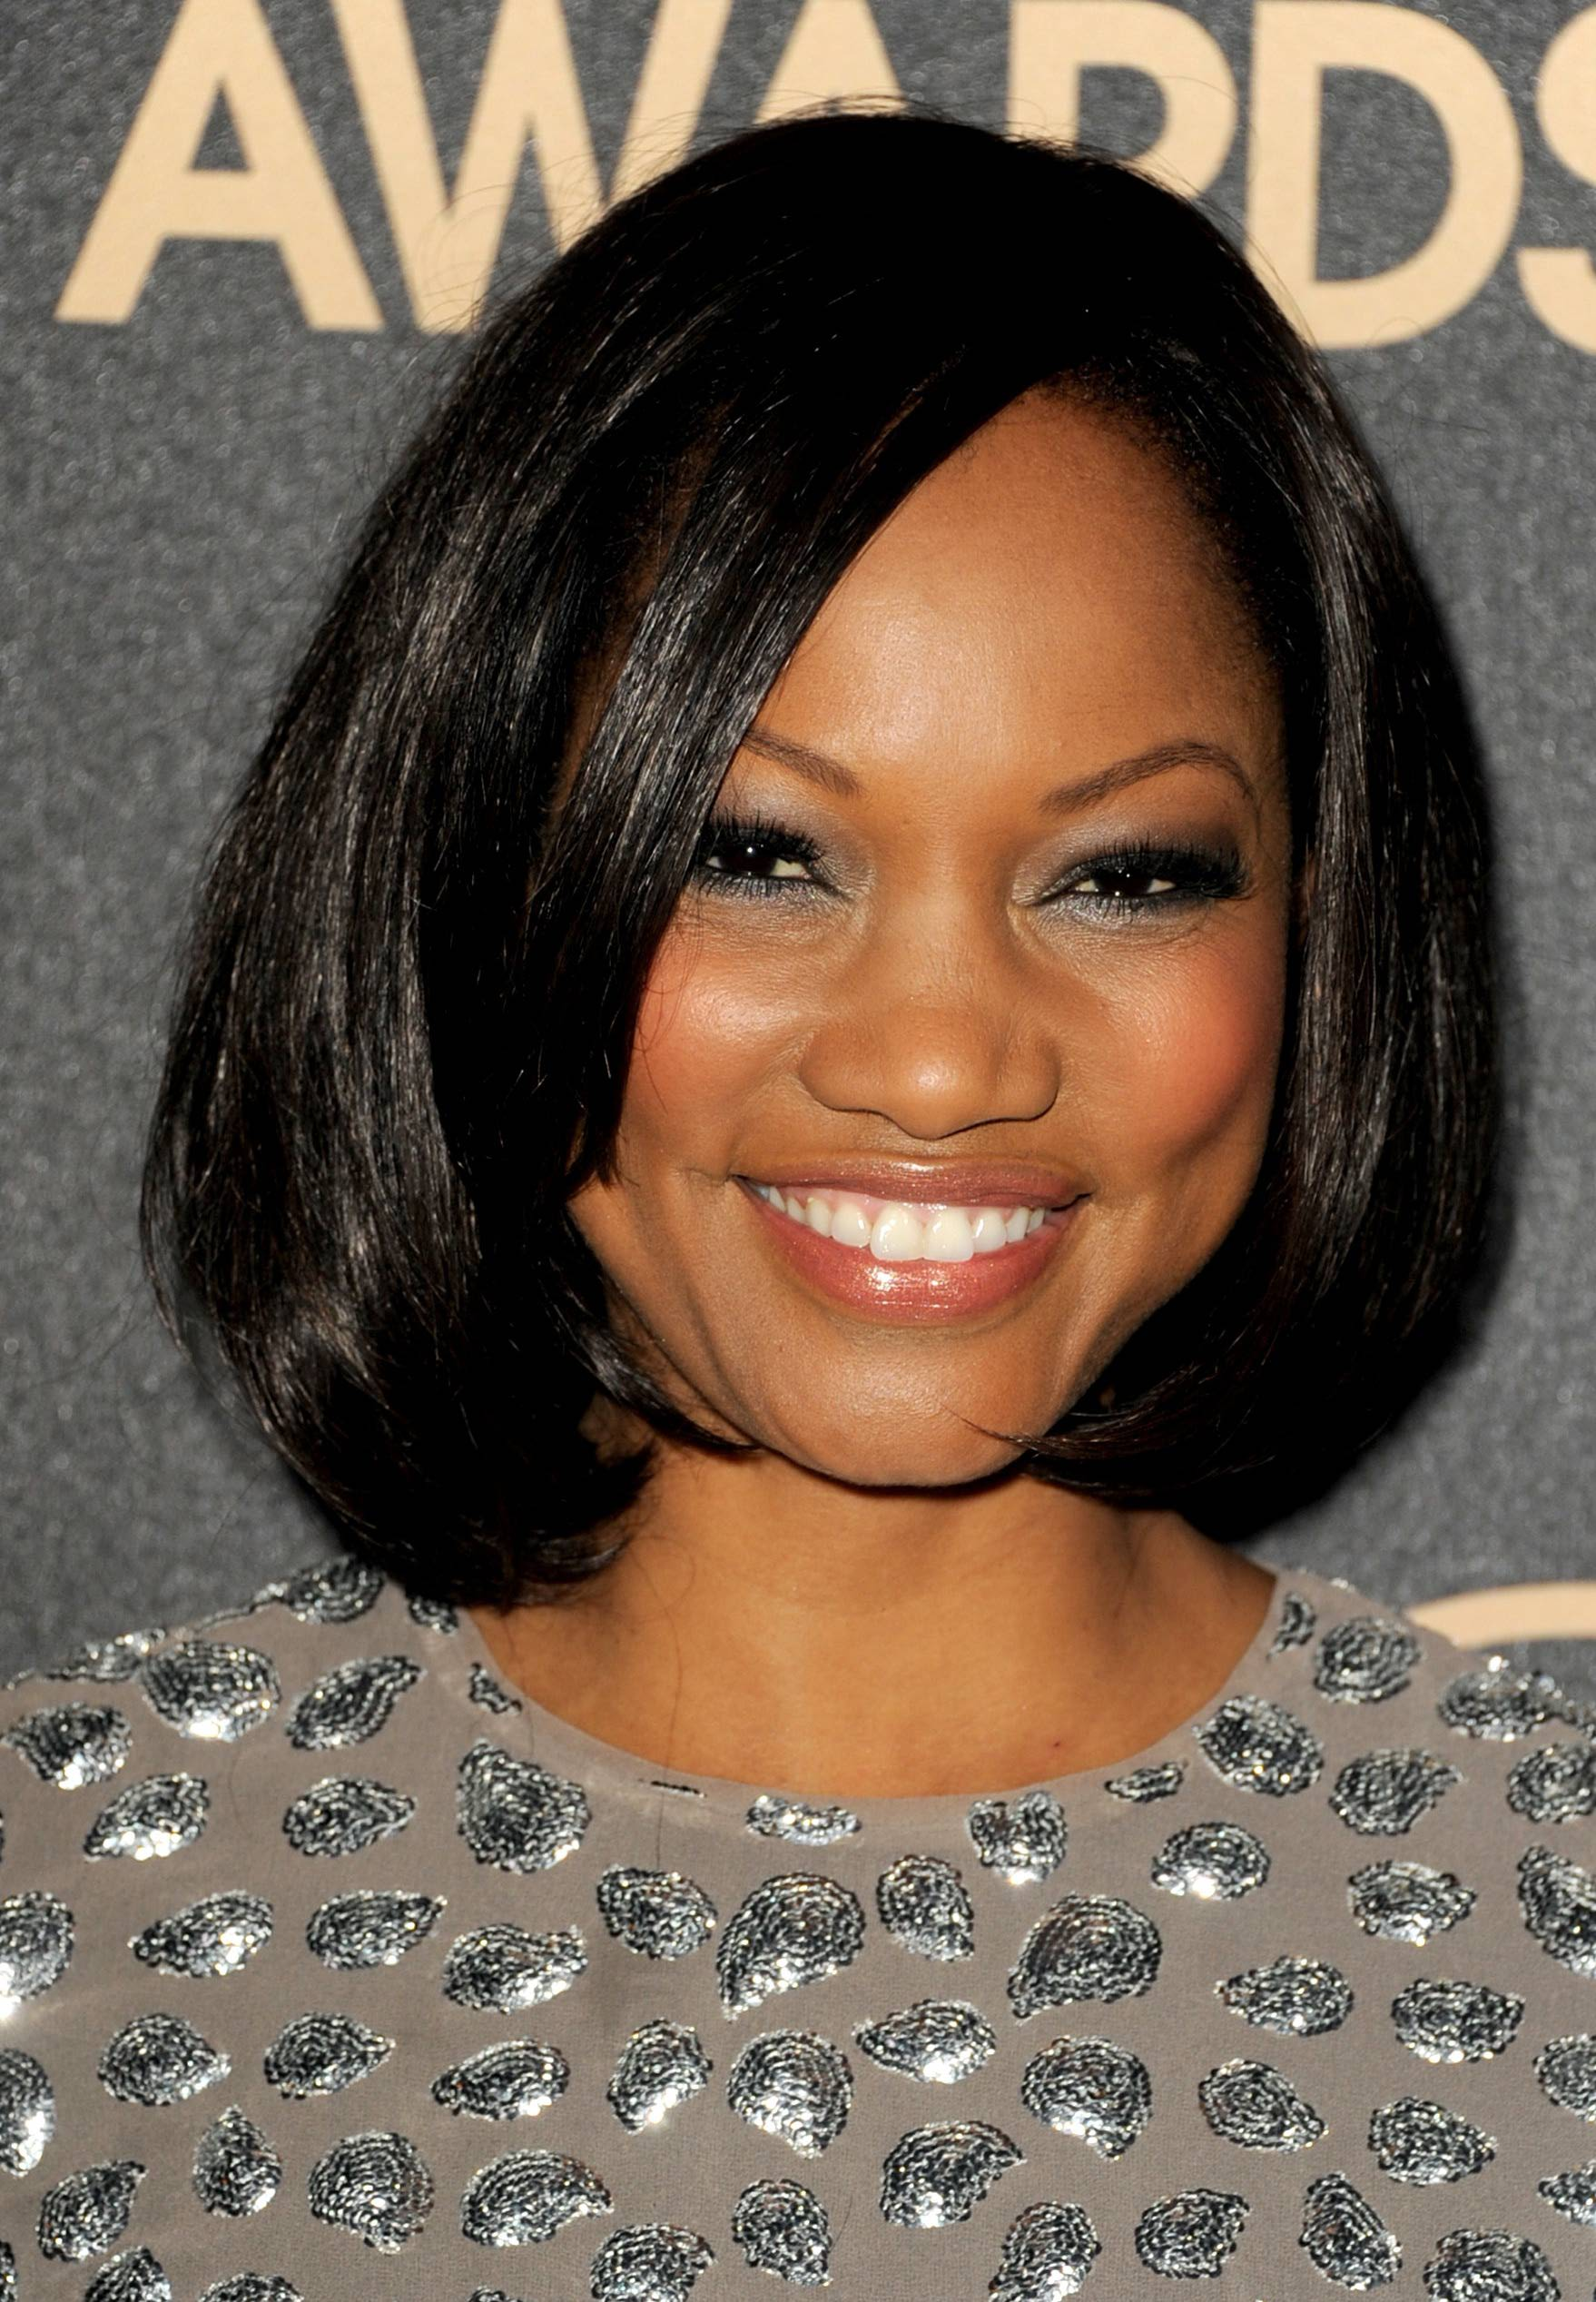 Medium Length Hairstyles For Black Women With Round Faces